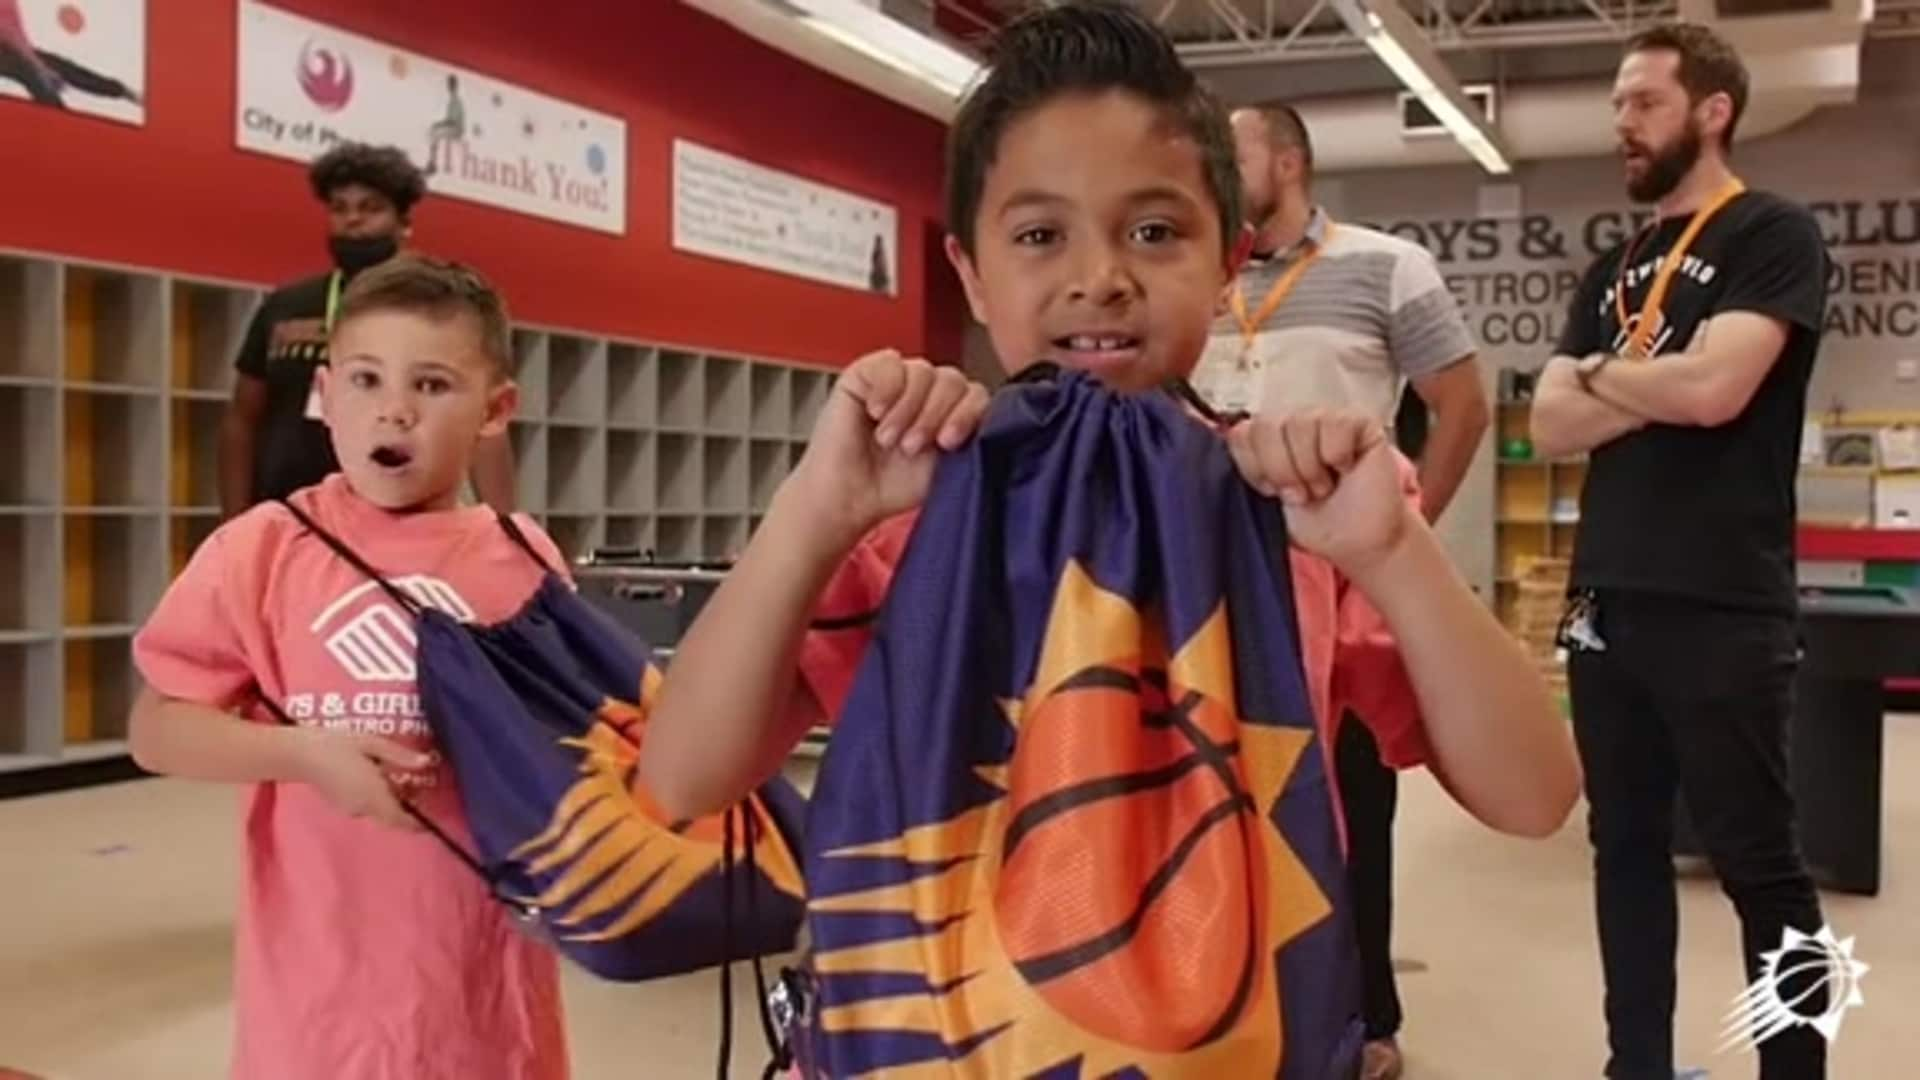 Phoenix Suns & Carl's Jr. Team Up To Feed Those In Need Across The Valley